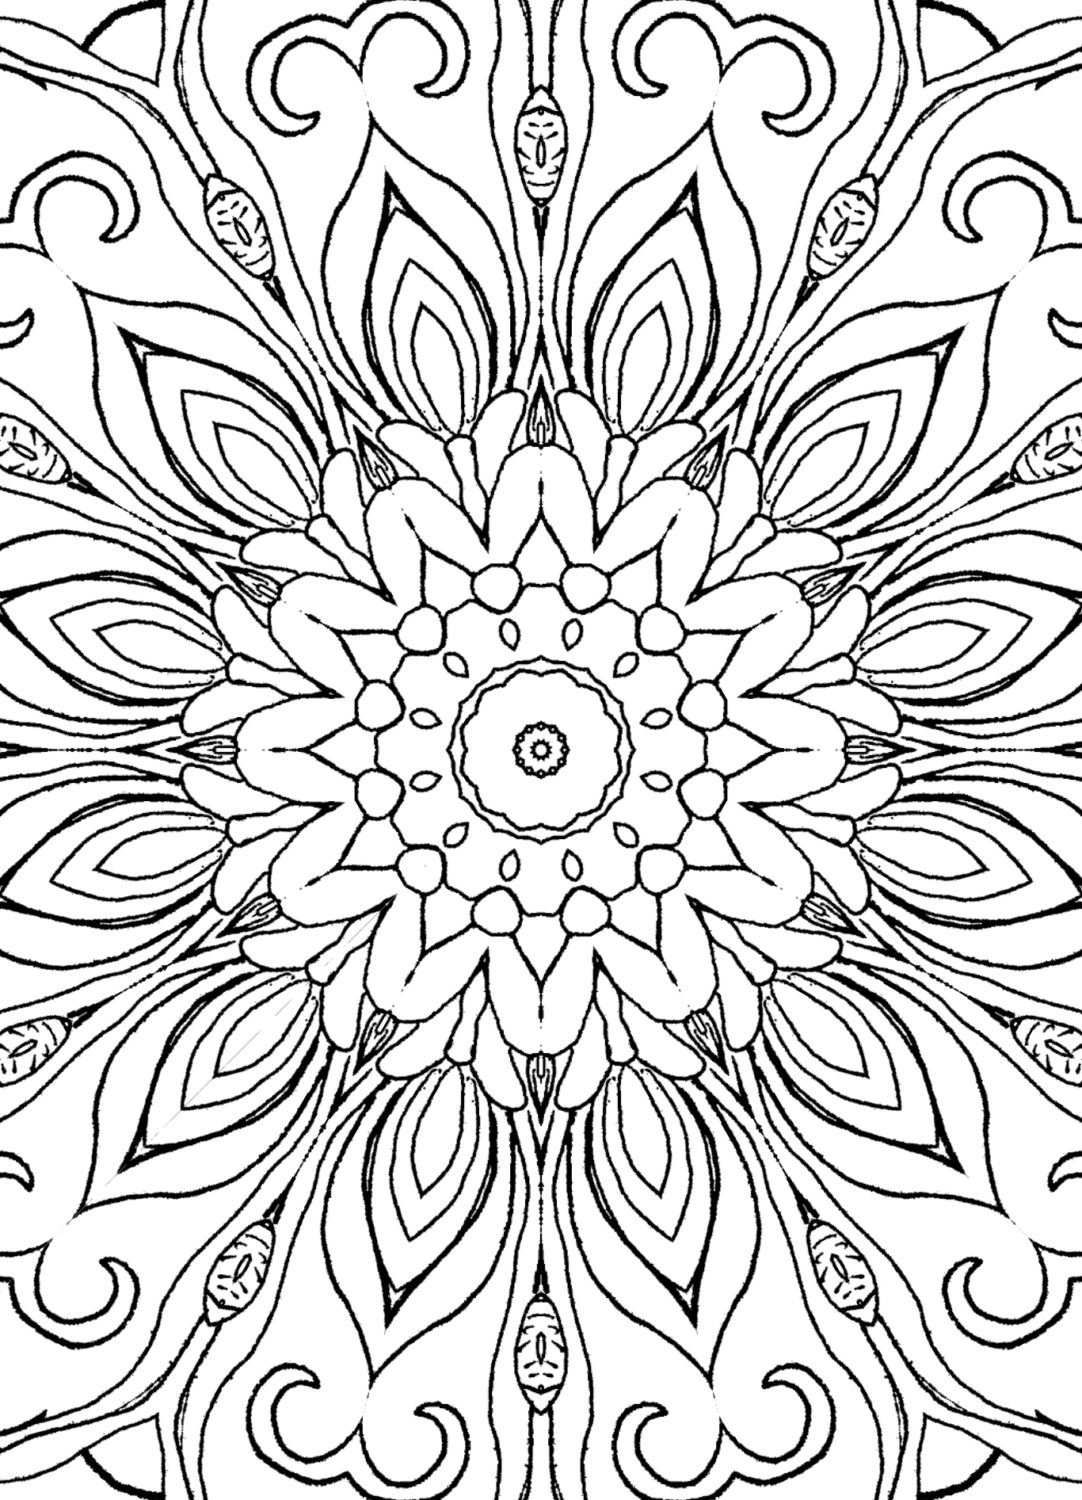 printable designs to color free printable geometric coloring pages for adults printable designs to color